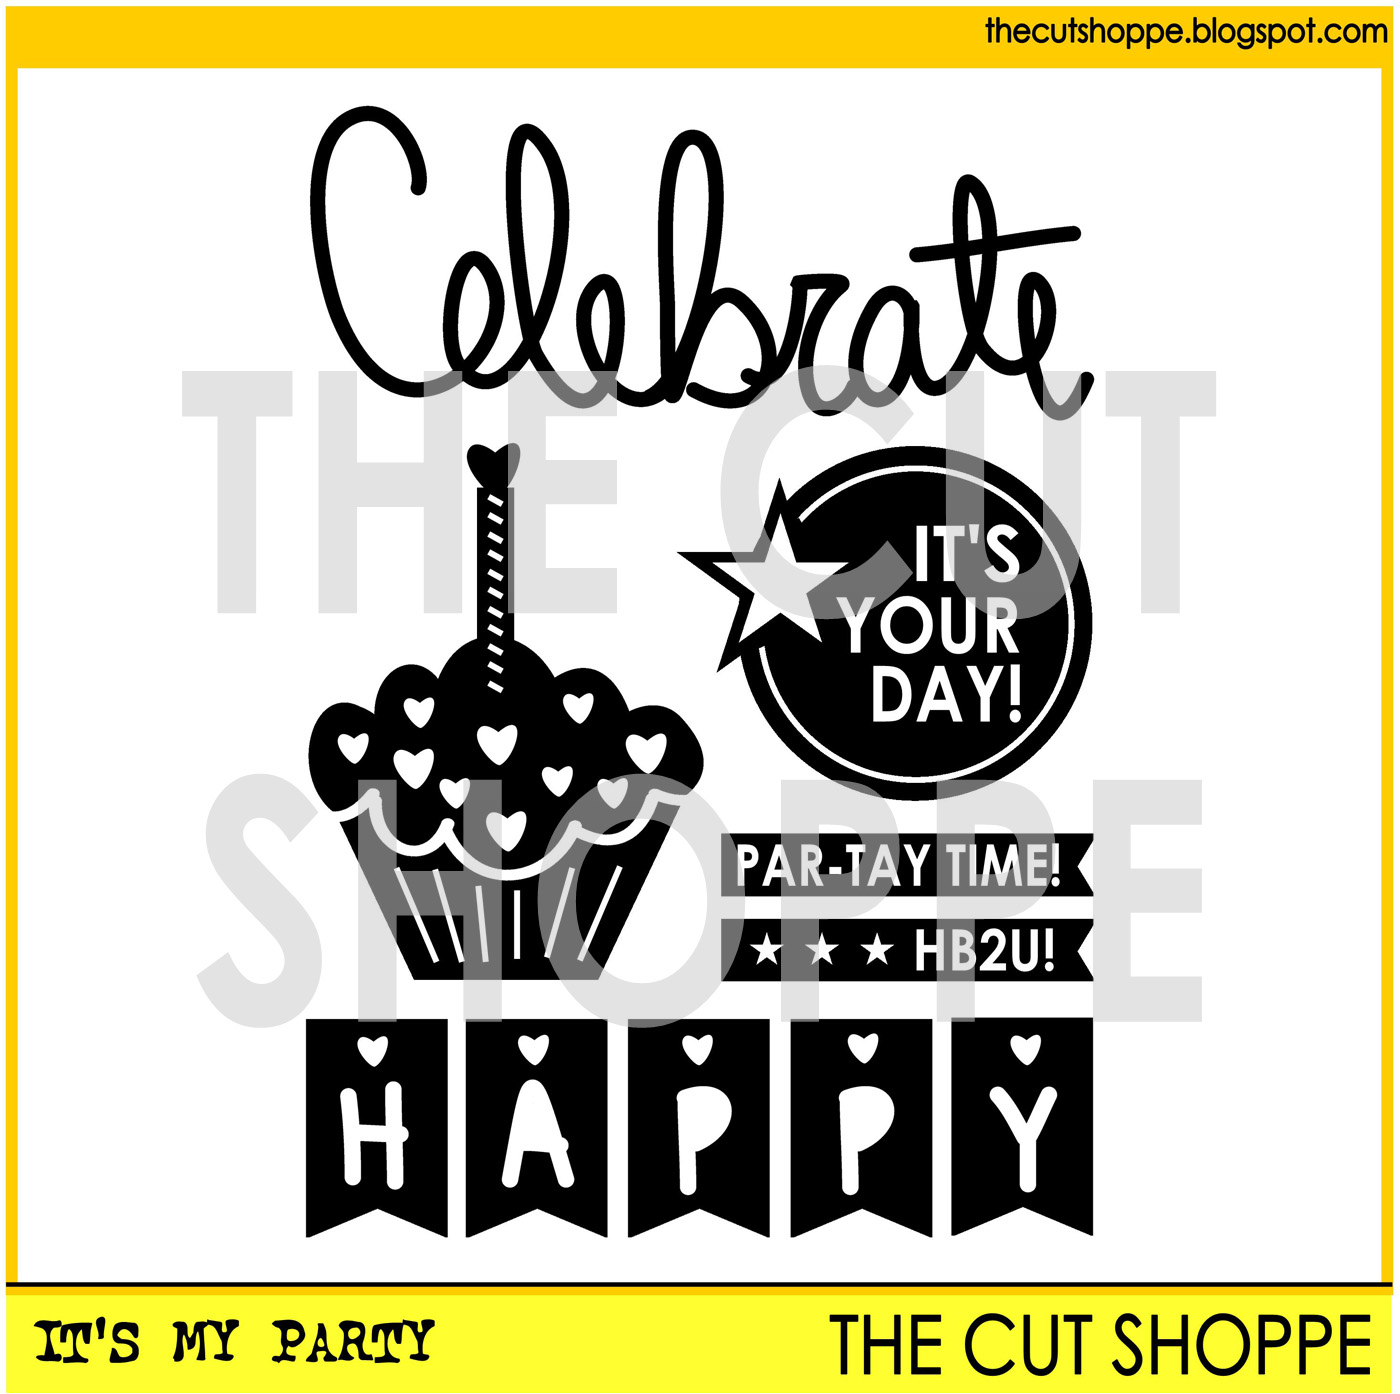 https://www.etsy.com/listing/218526565/the-its-my-party-cut-file-consists-of-6?ref=shop_home_active_2